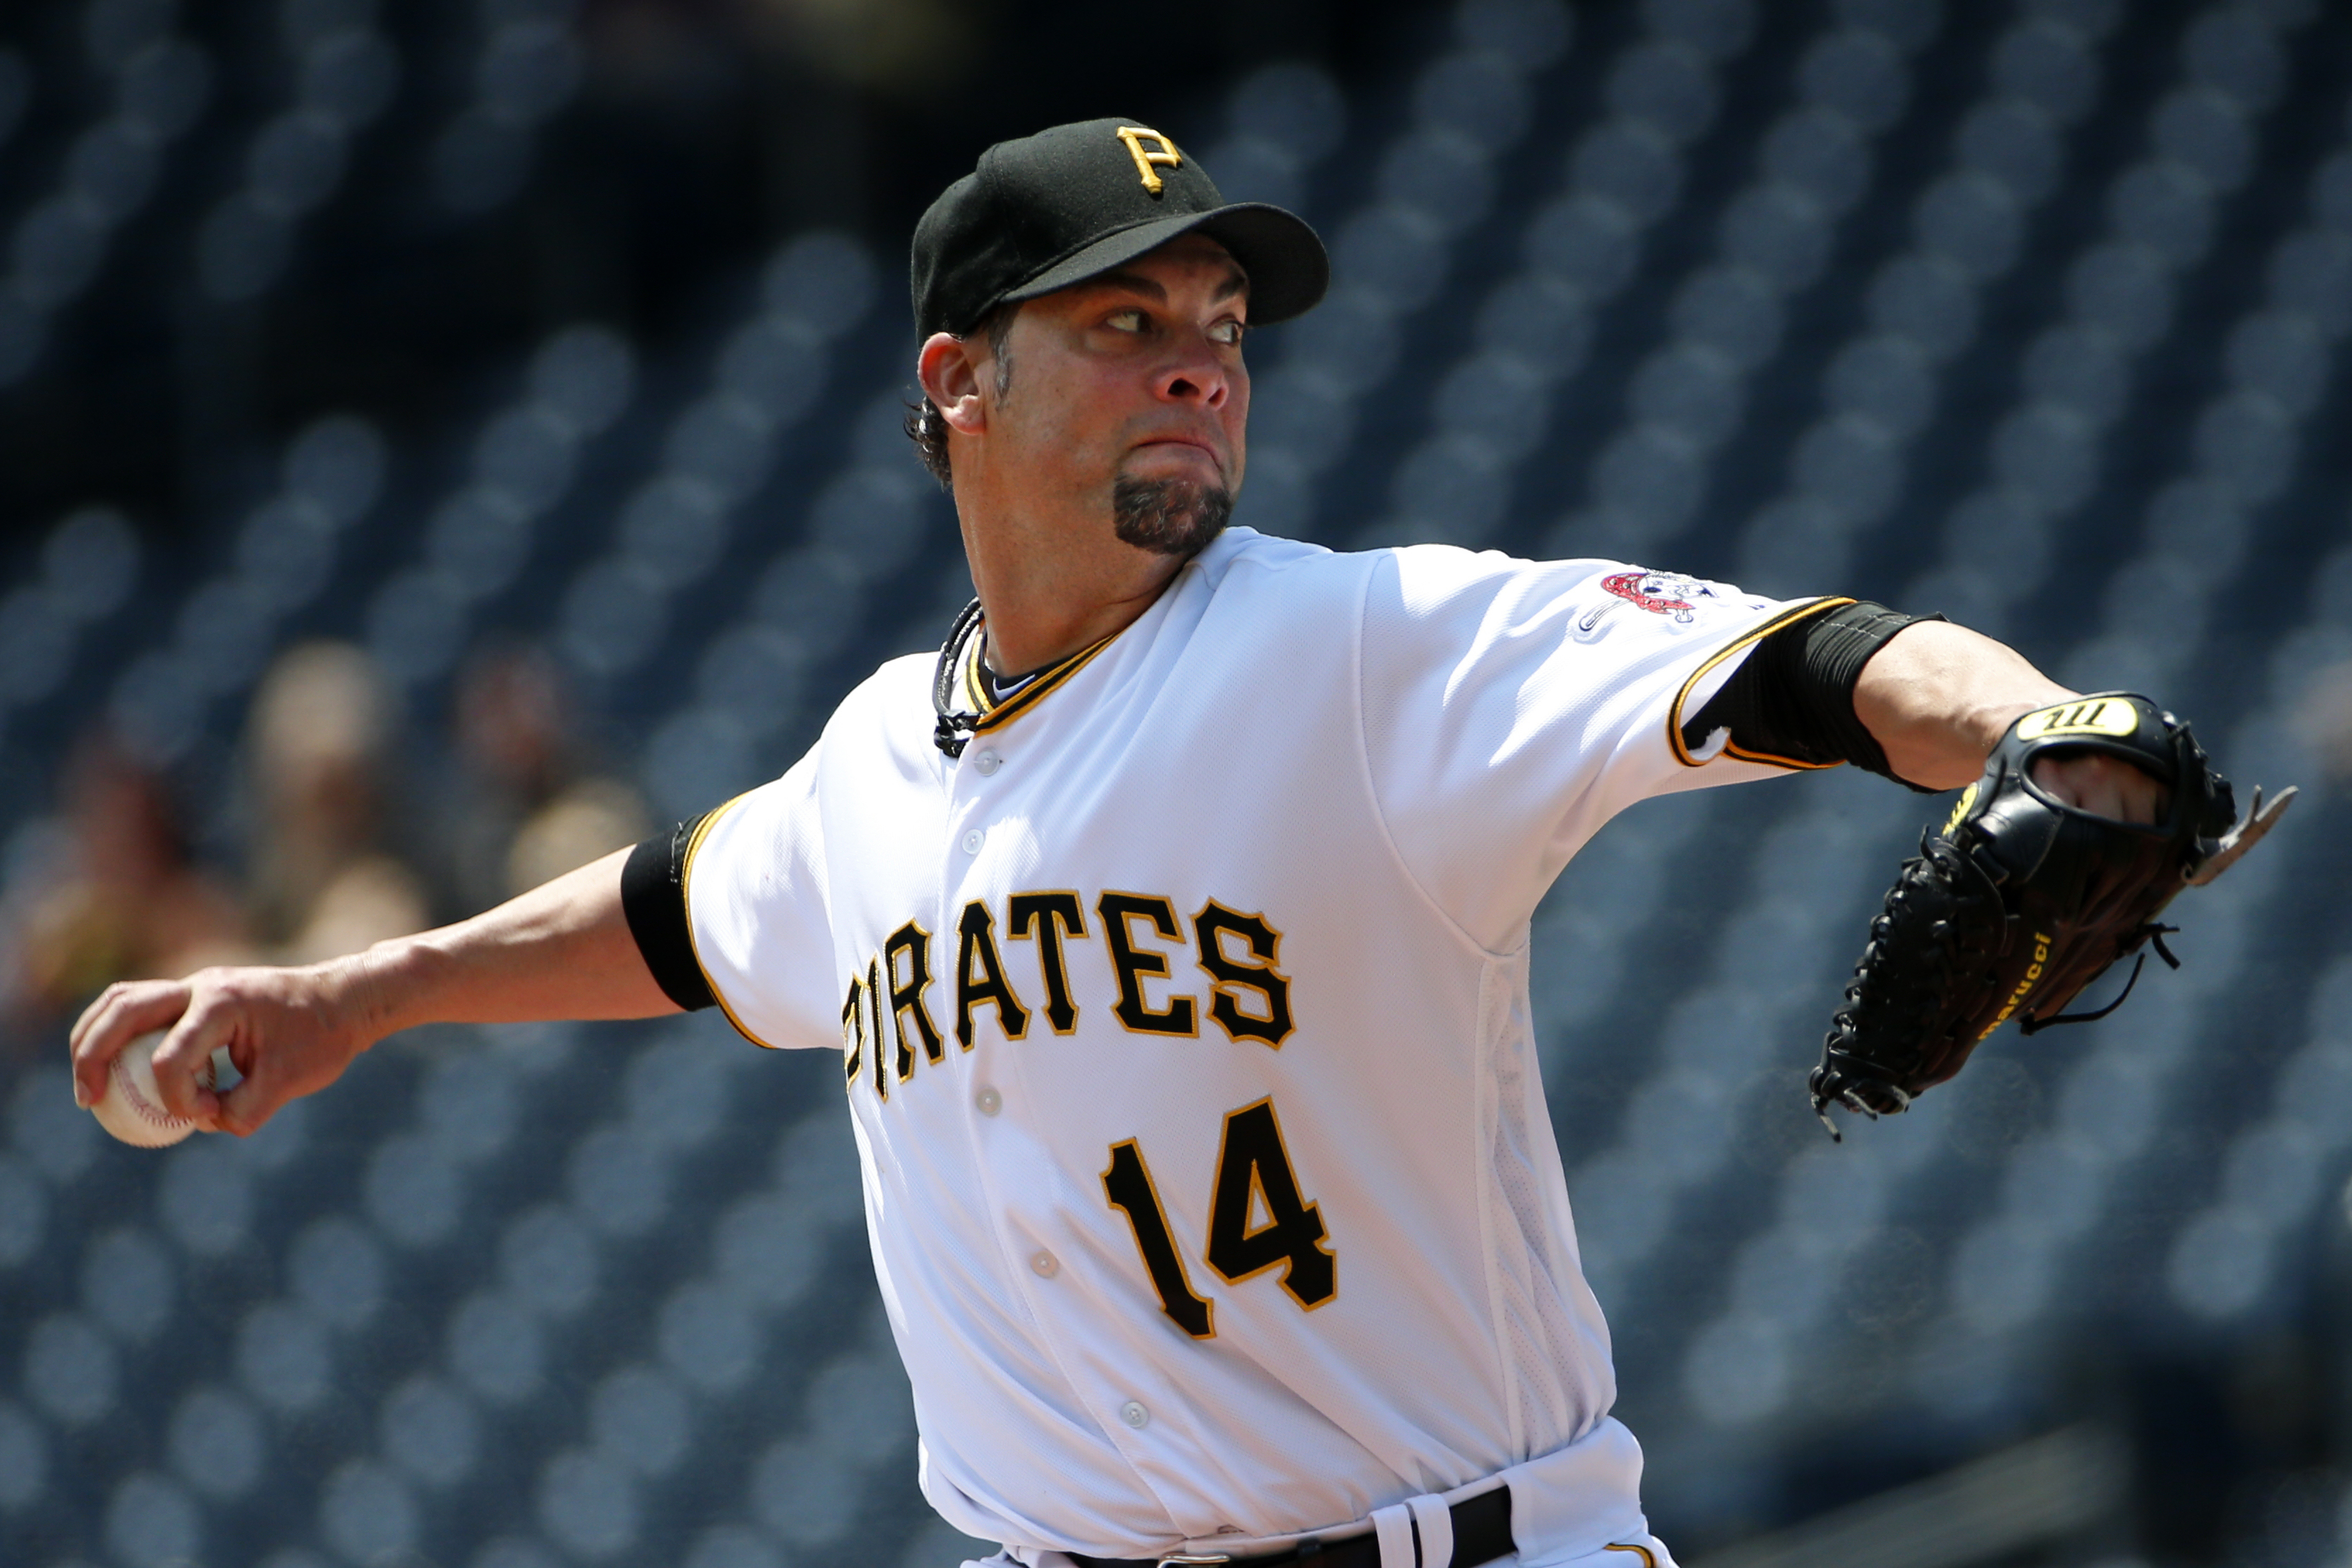 Pittsburgh Pirates starting pitcher Ryan Vogelsong delivers during the first inning of a baseball game against the Colorado Rockies in Pittsburgh, Monday, May 23, 2016. (AP Photo/Gene J. Puskar)